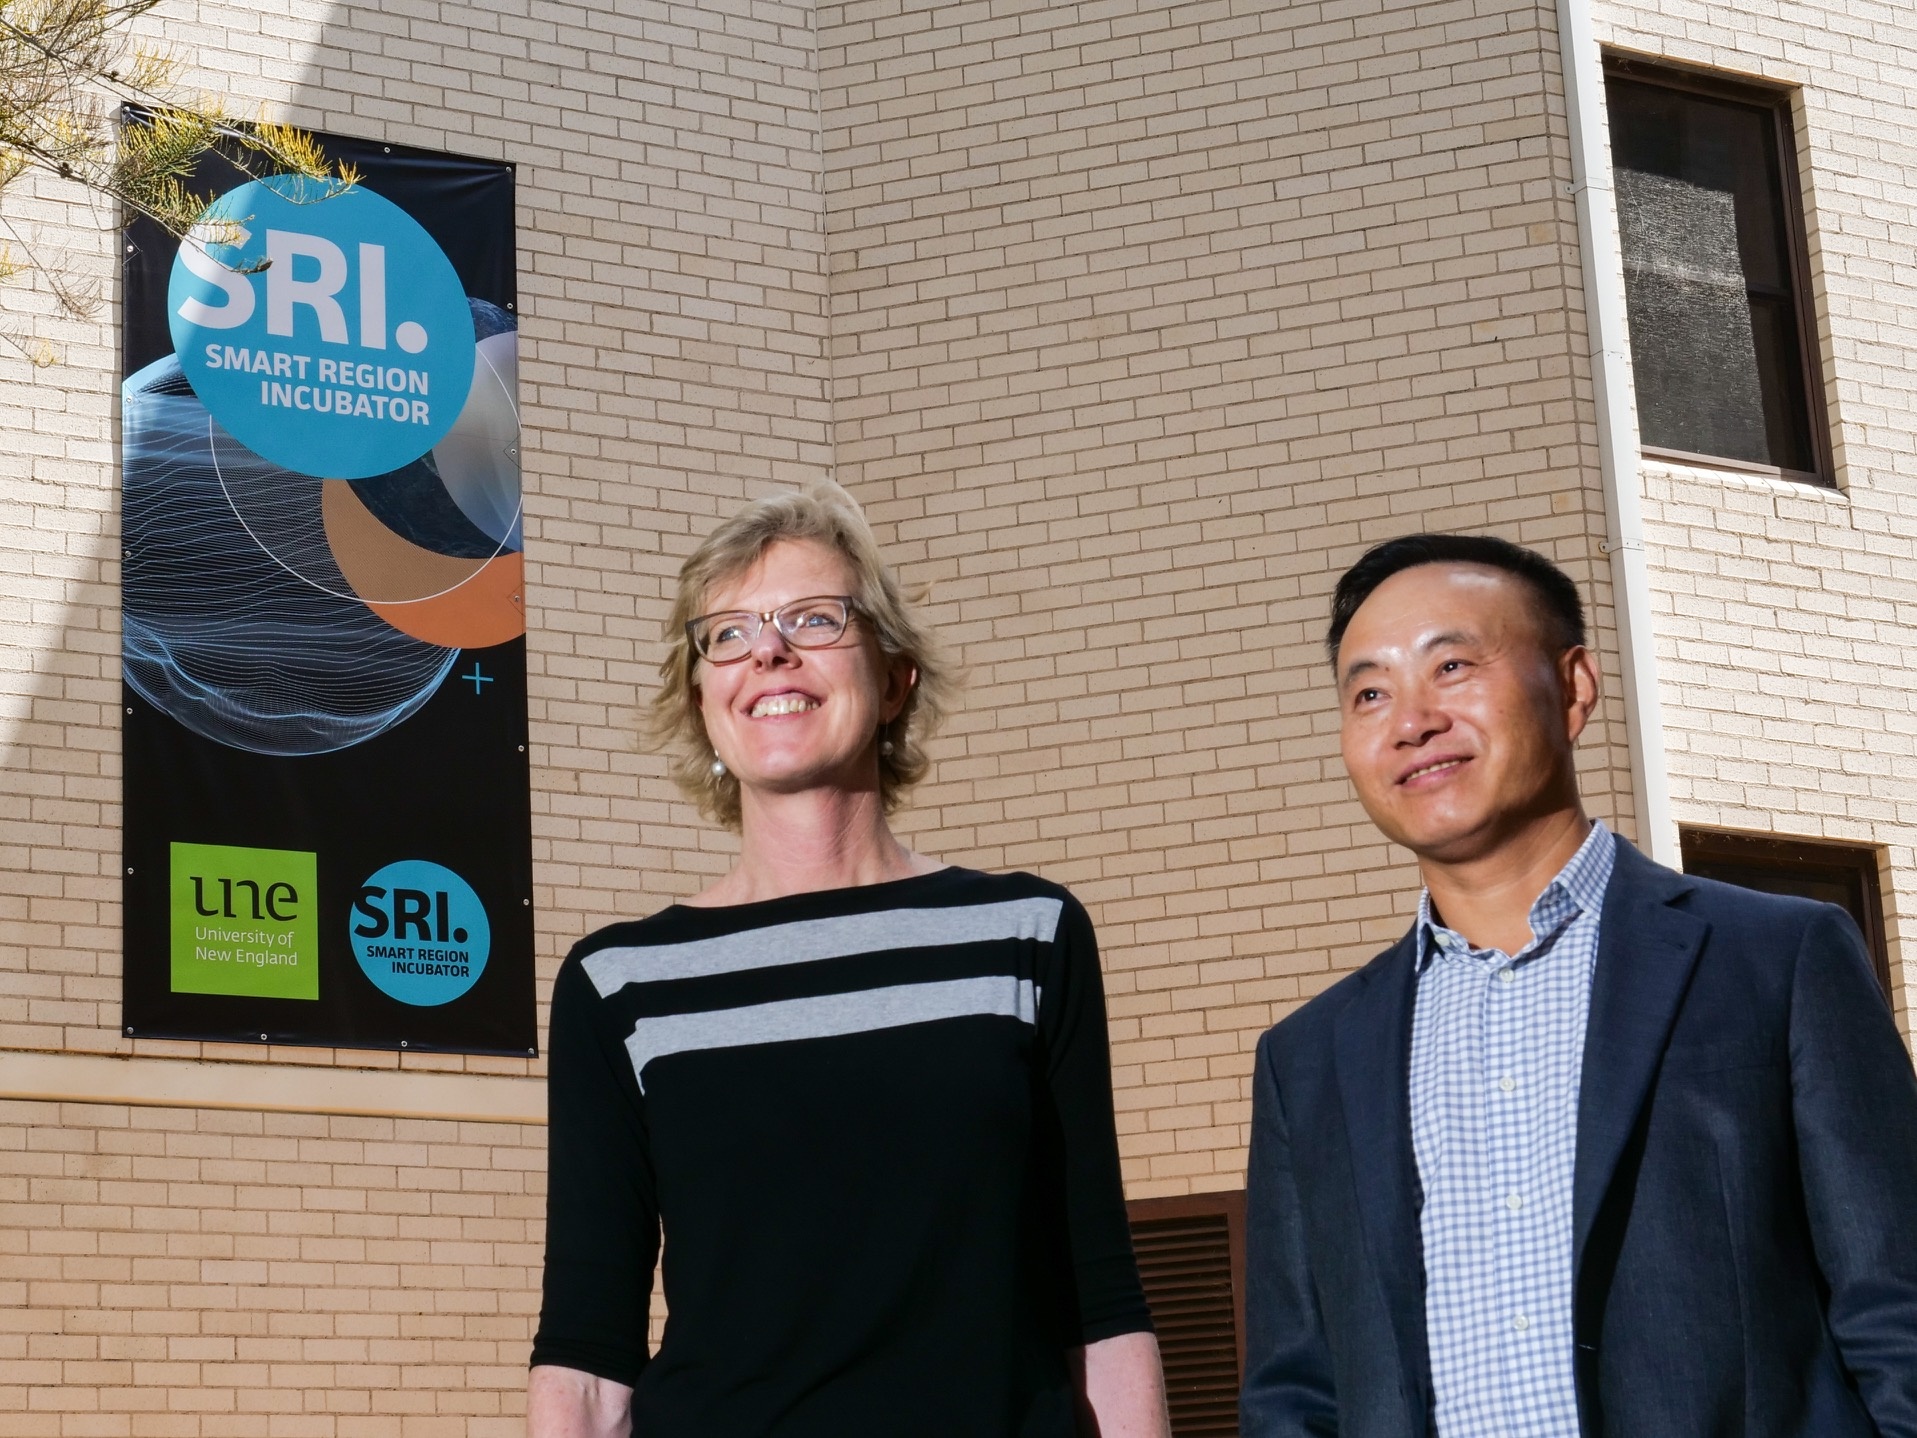 Lou Conway with Dr Zhengrong Shi outside the SMART Region Incubator at UNE